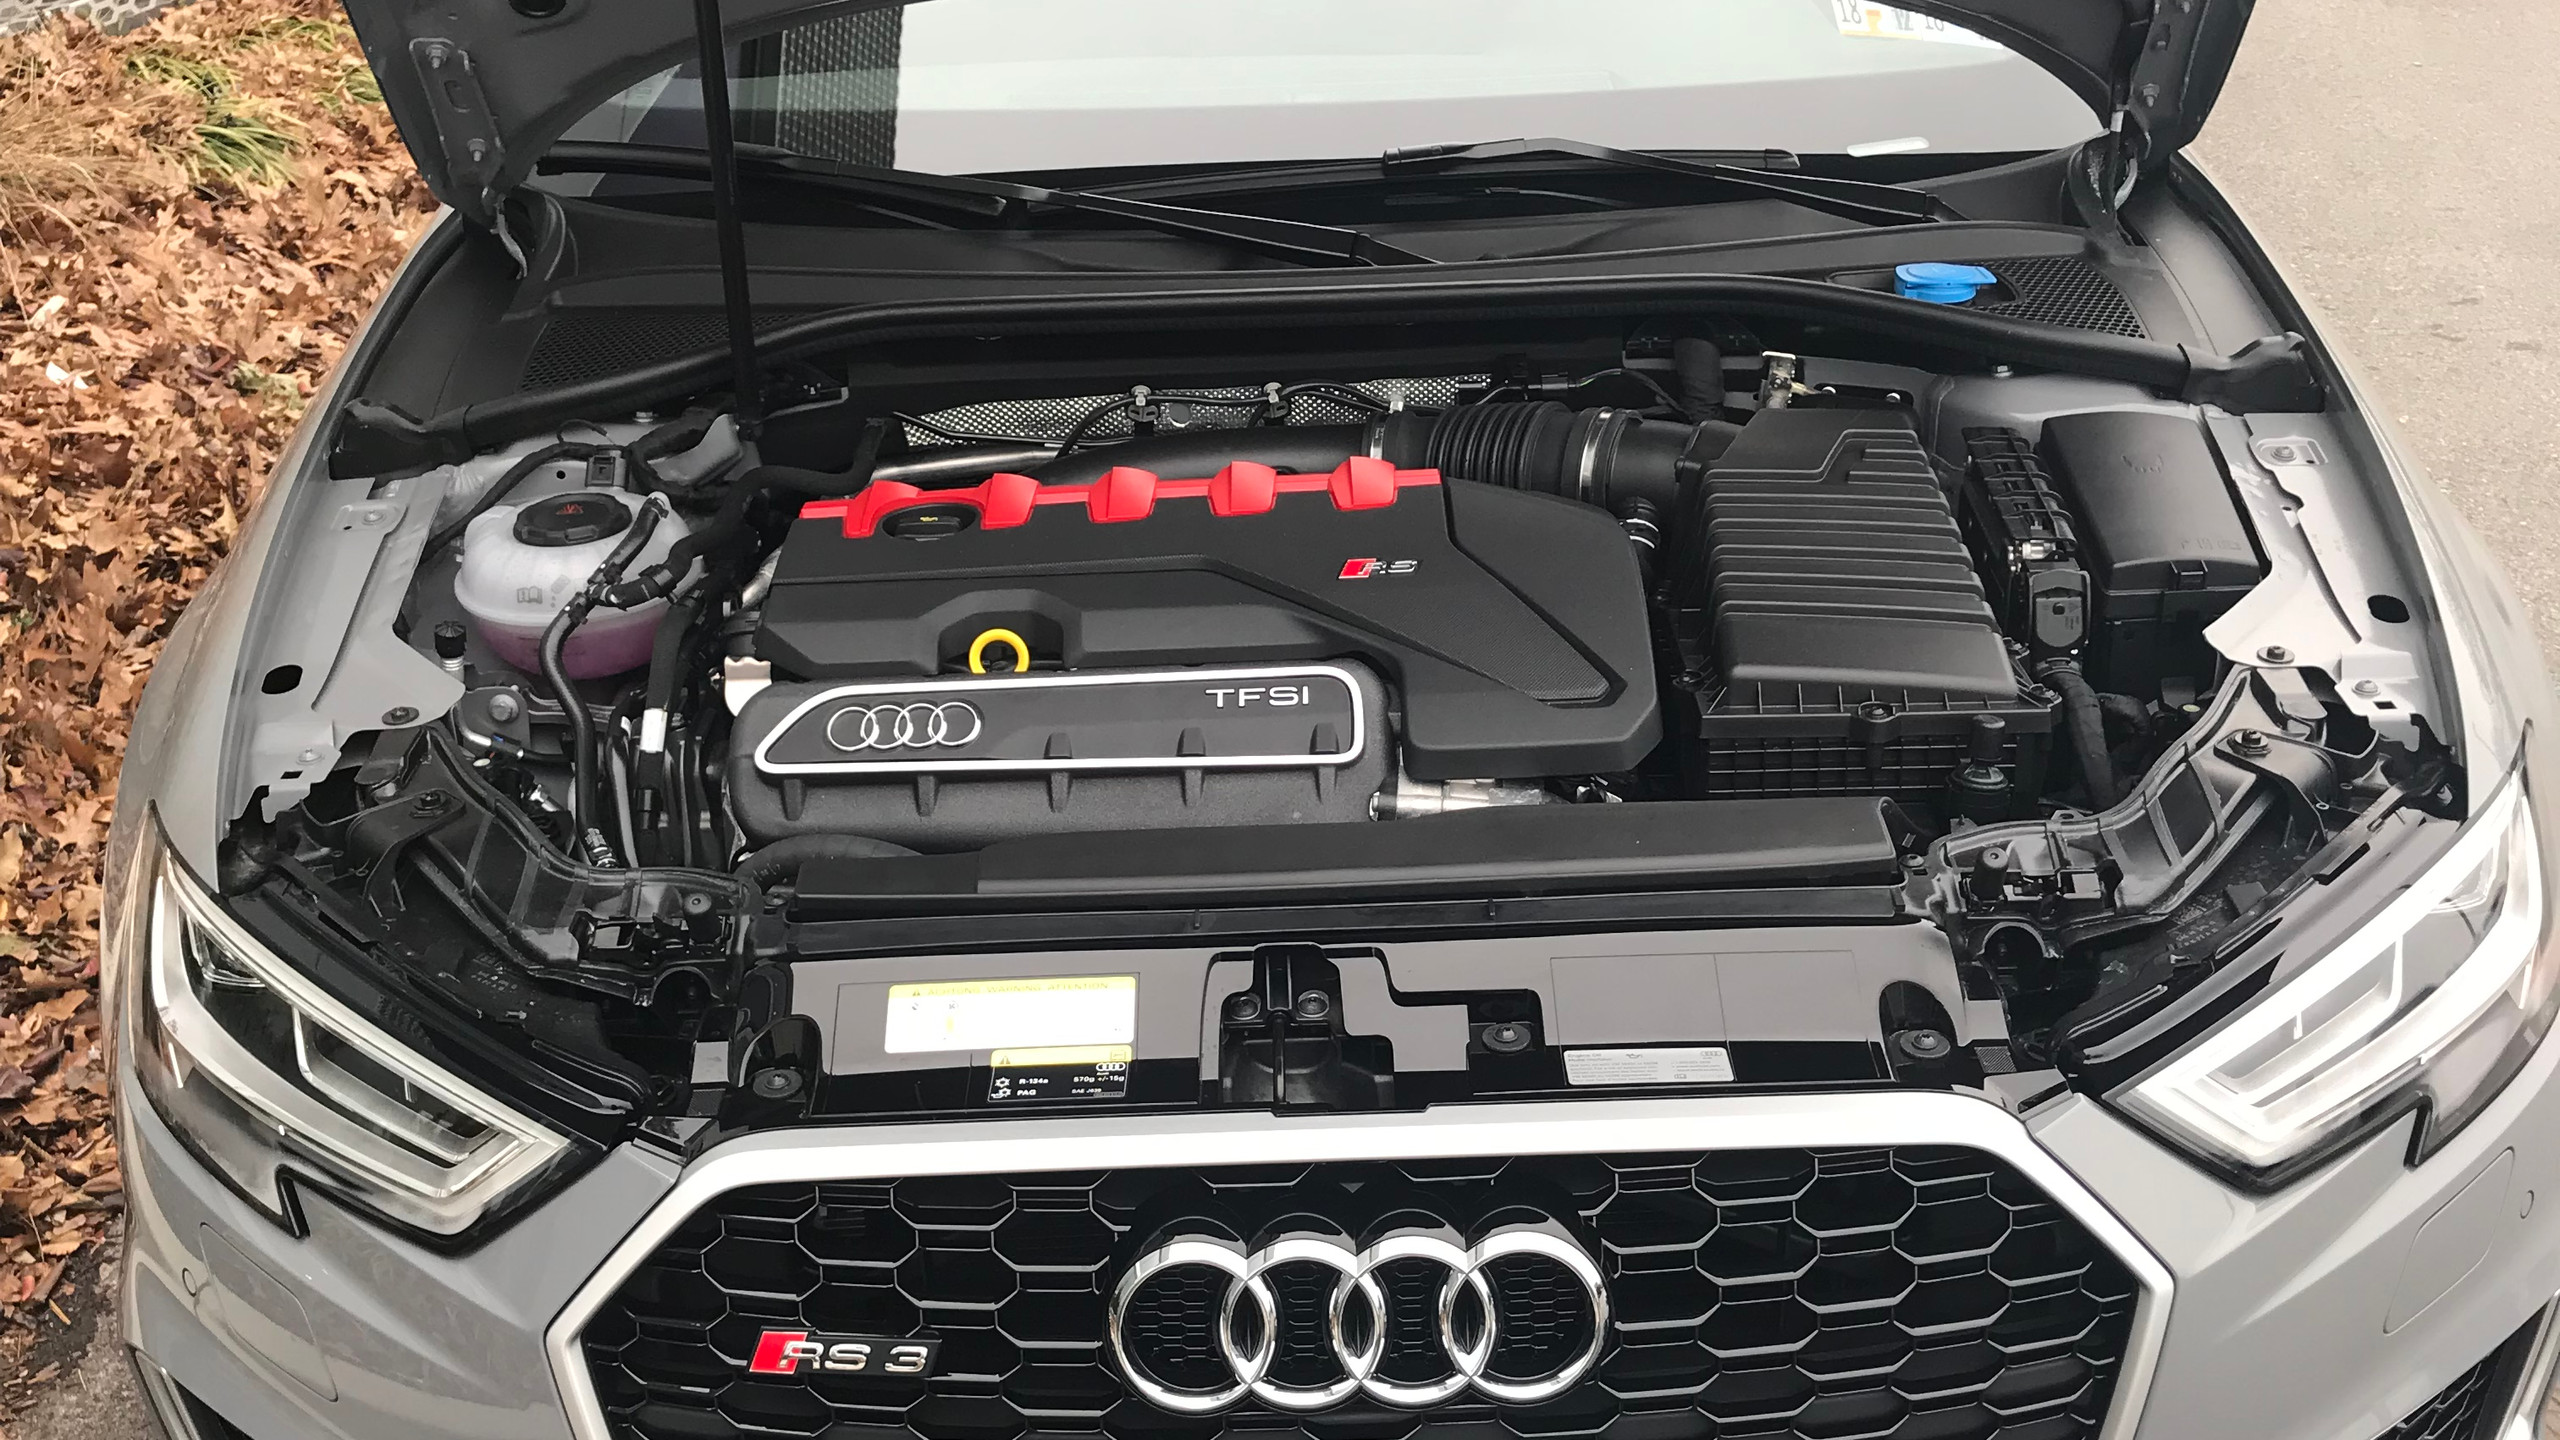 RS3 engine bay